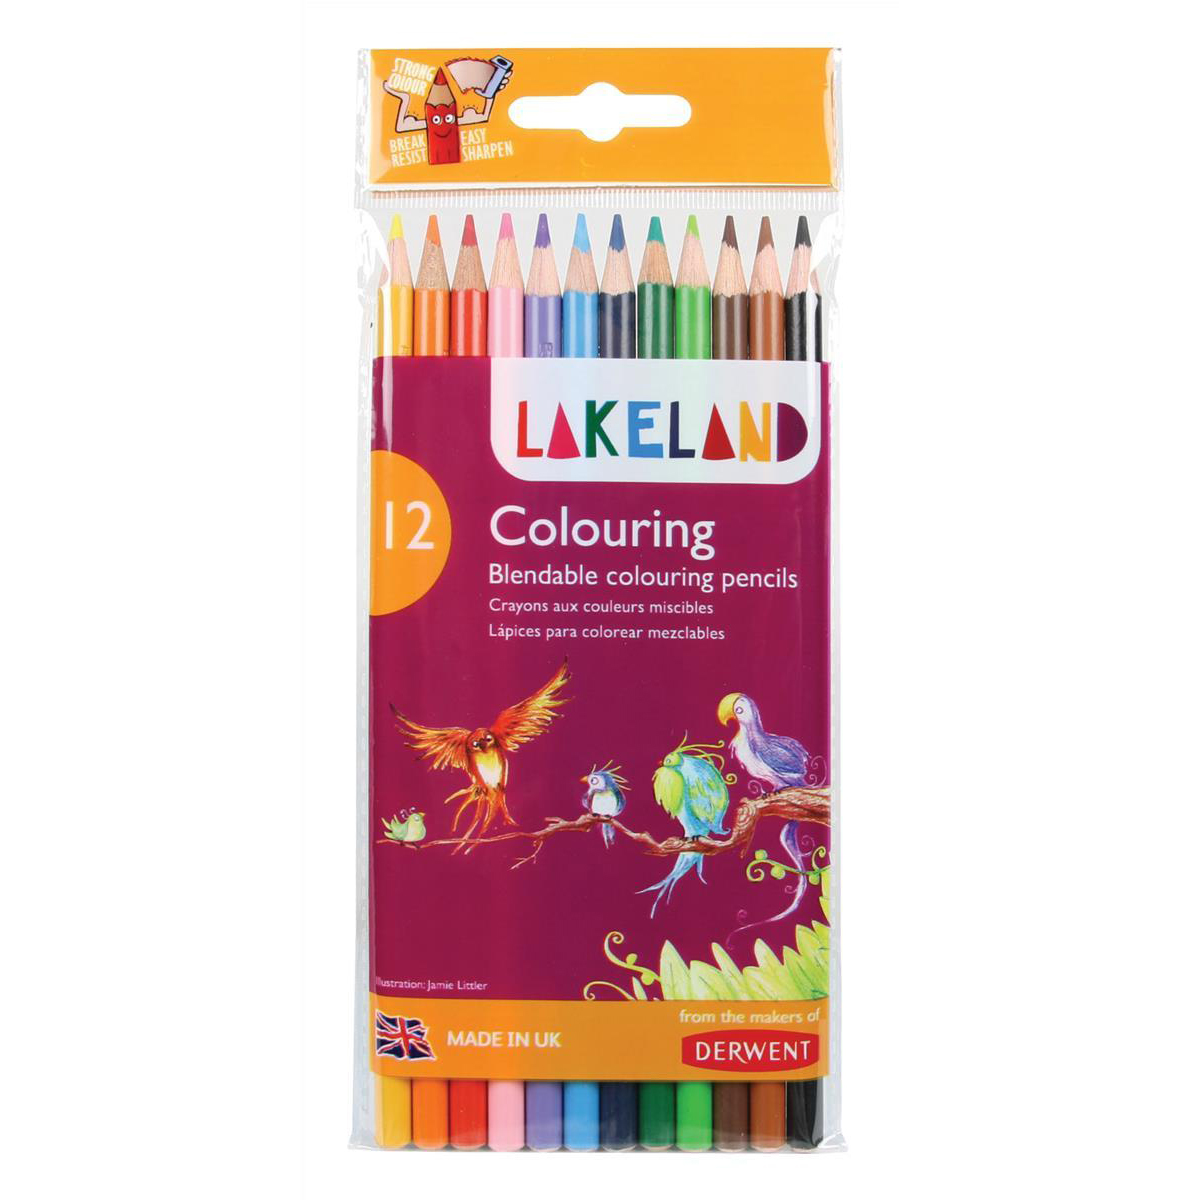 Lakeland Colouring Pencils Round-barrelled Soft Blendable Assorted Ref 33356 Pack 12